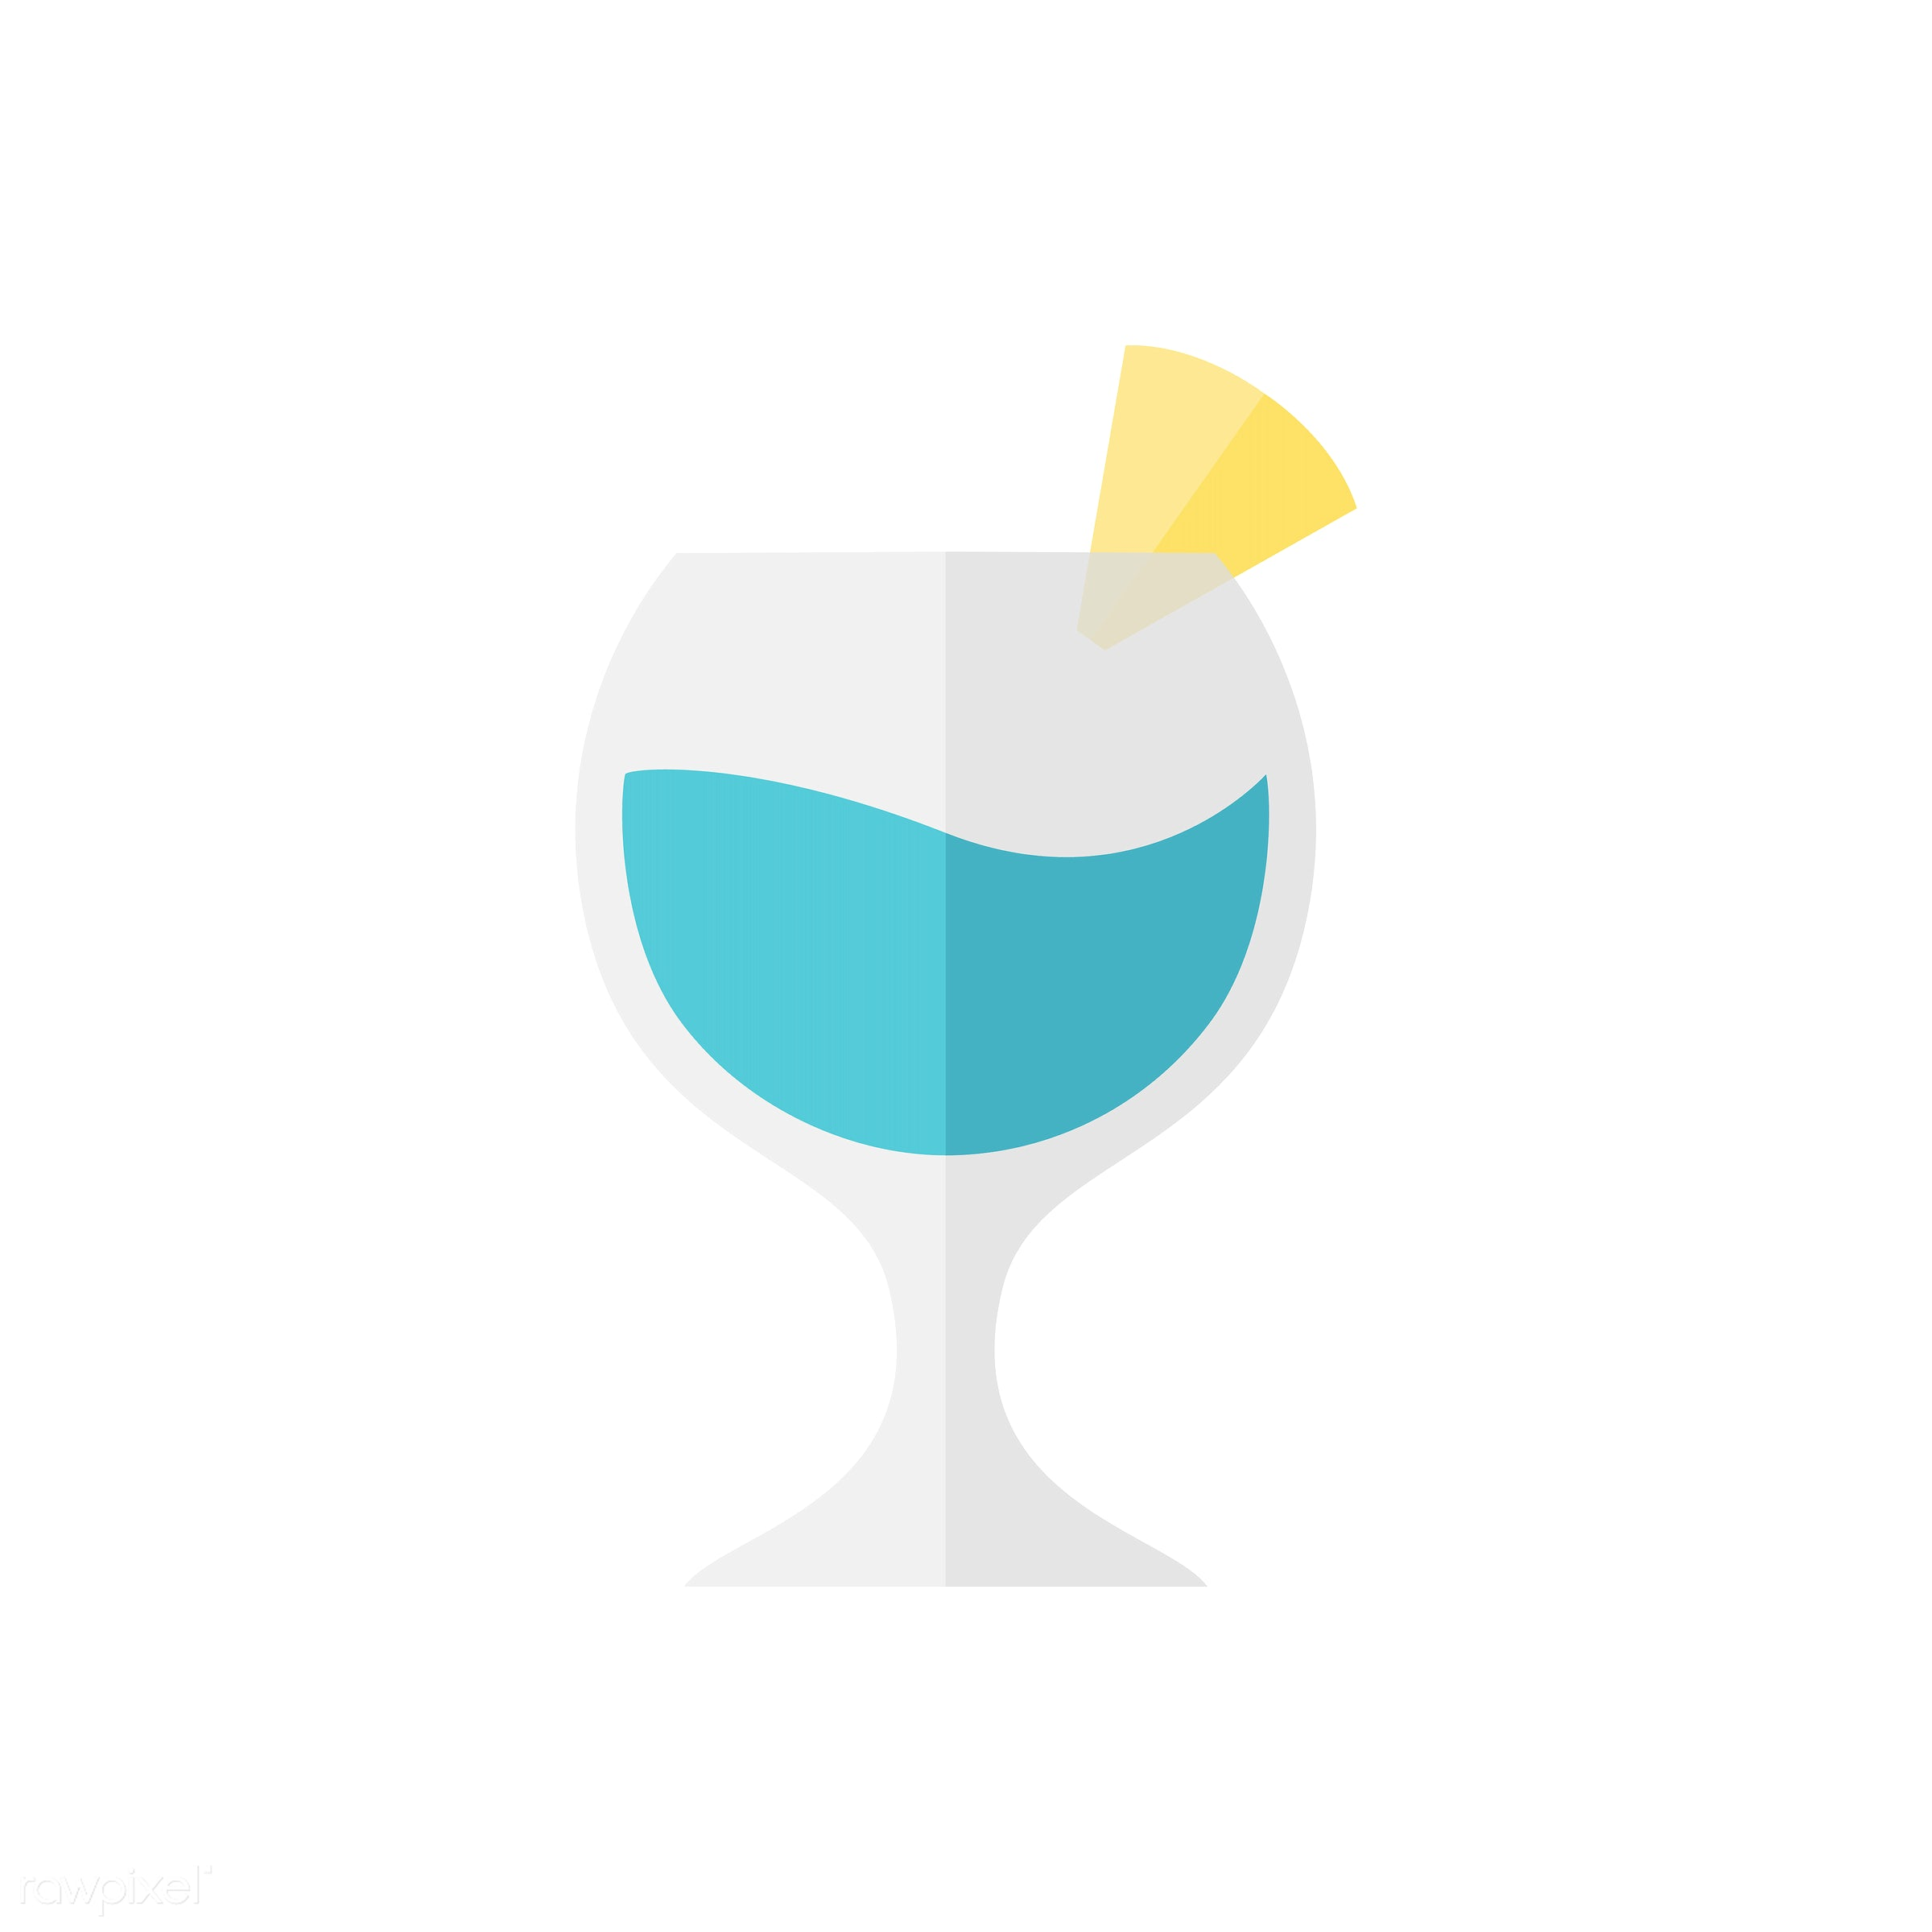 Cocktail vector - vector, graphic, illustration, icon, symbol, colorful, cute, drink, beverage, water, cocktail, mocktail,...